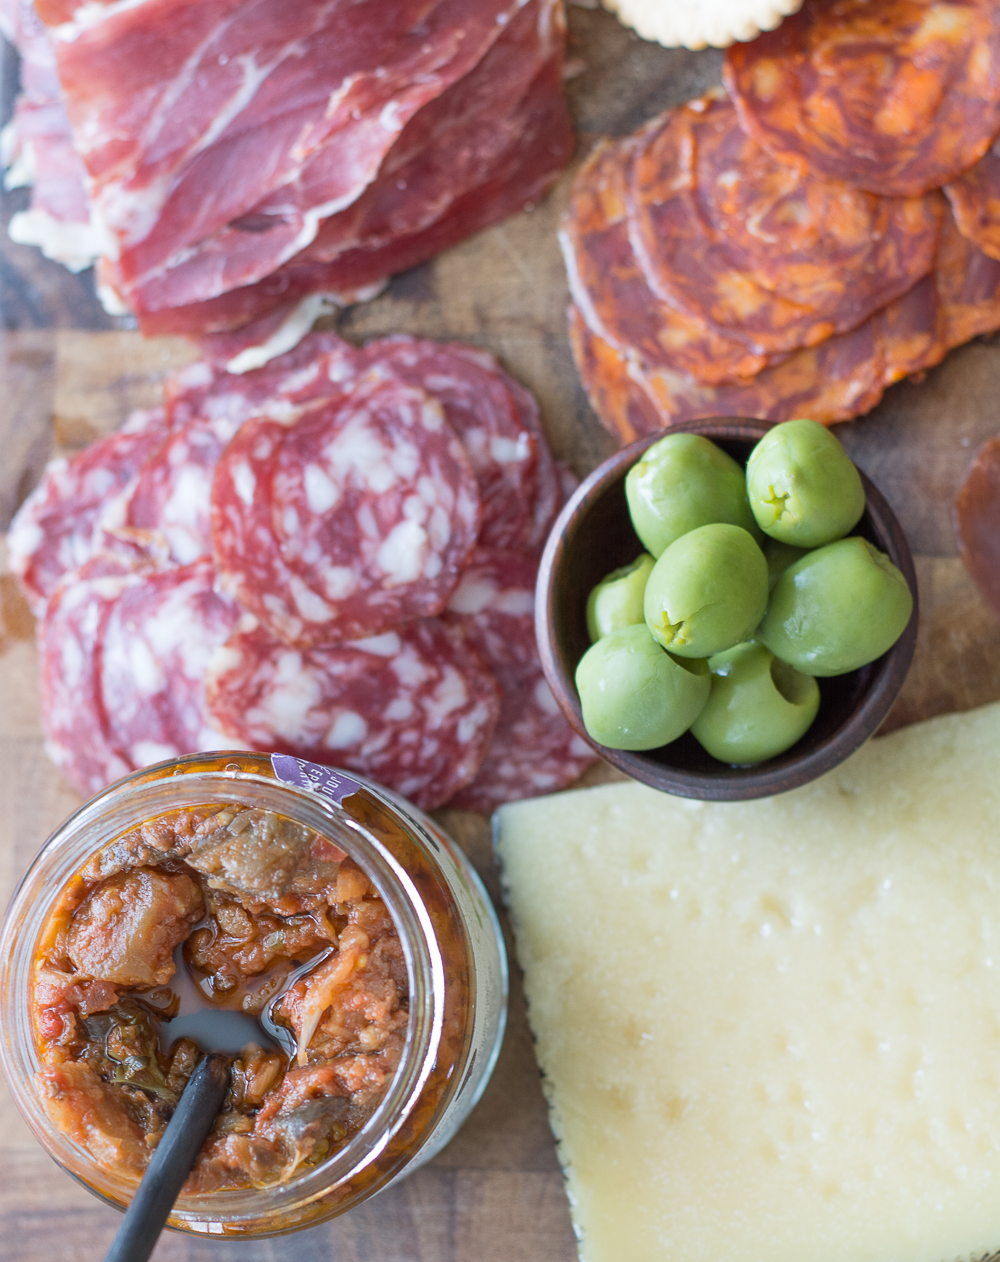 I am a sucker for a good appetizer platter. There is nothing better than a nice big Charcuterie board packed with cured meats and fancy cheeses.